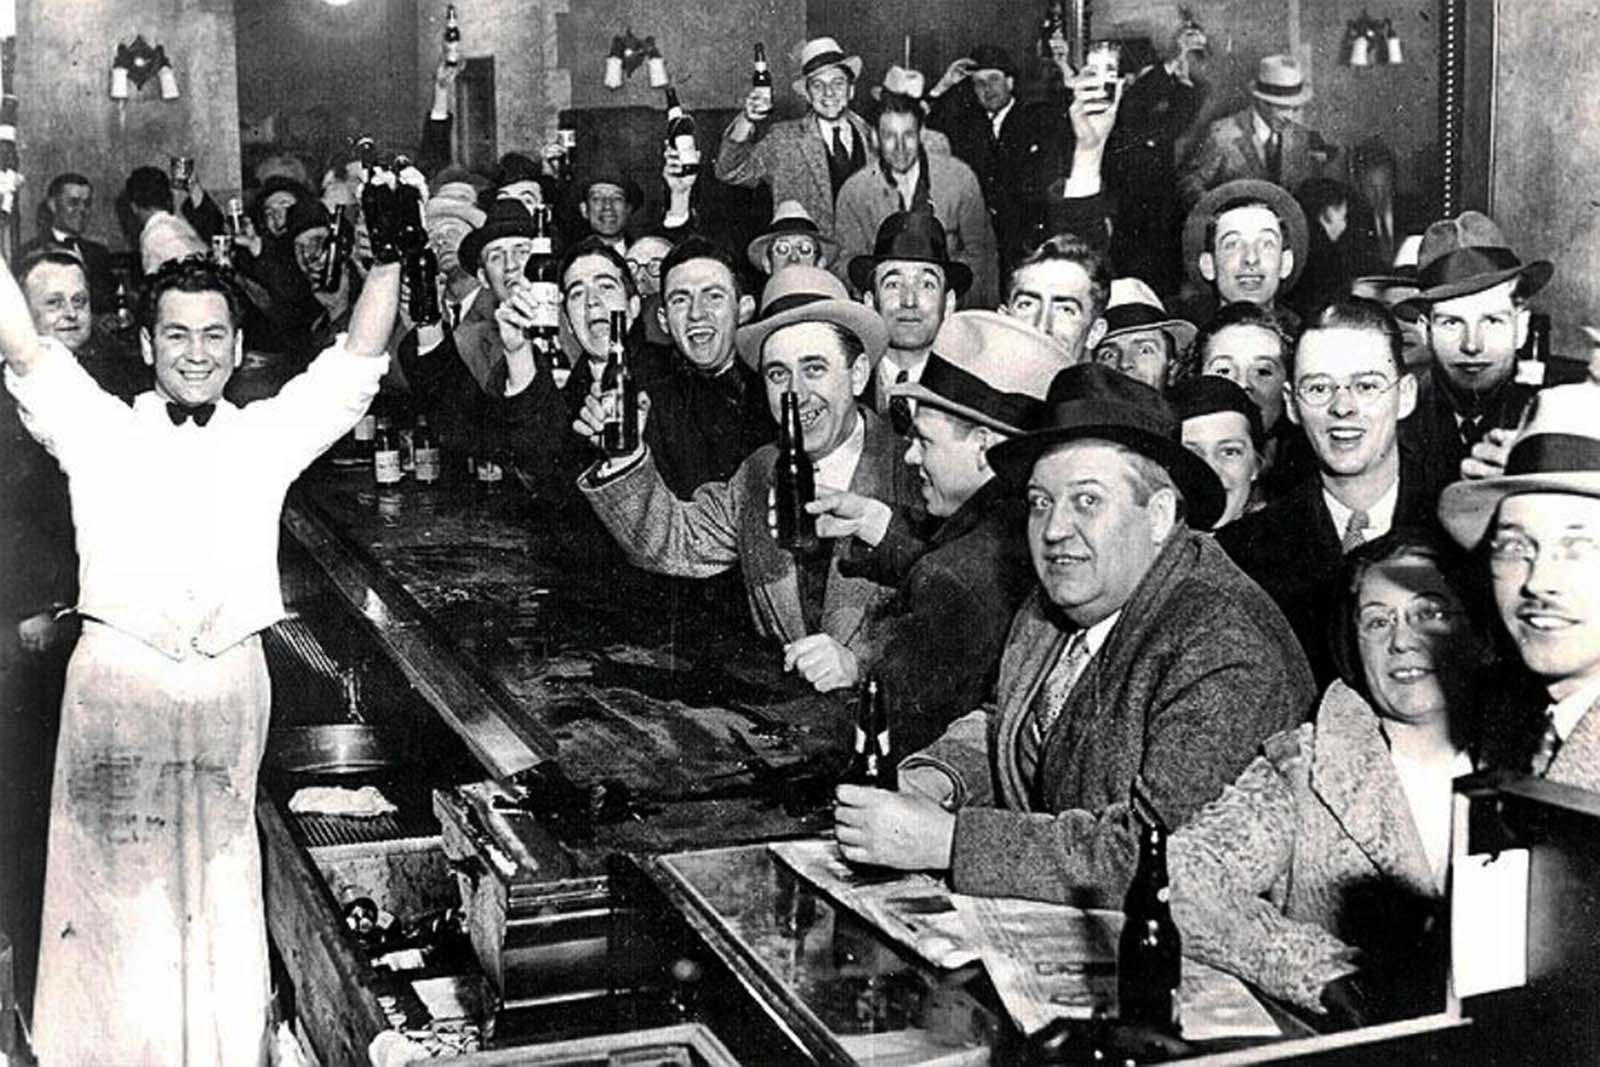 Bye Bye Volstead Law! Prohibition ends at last!